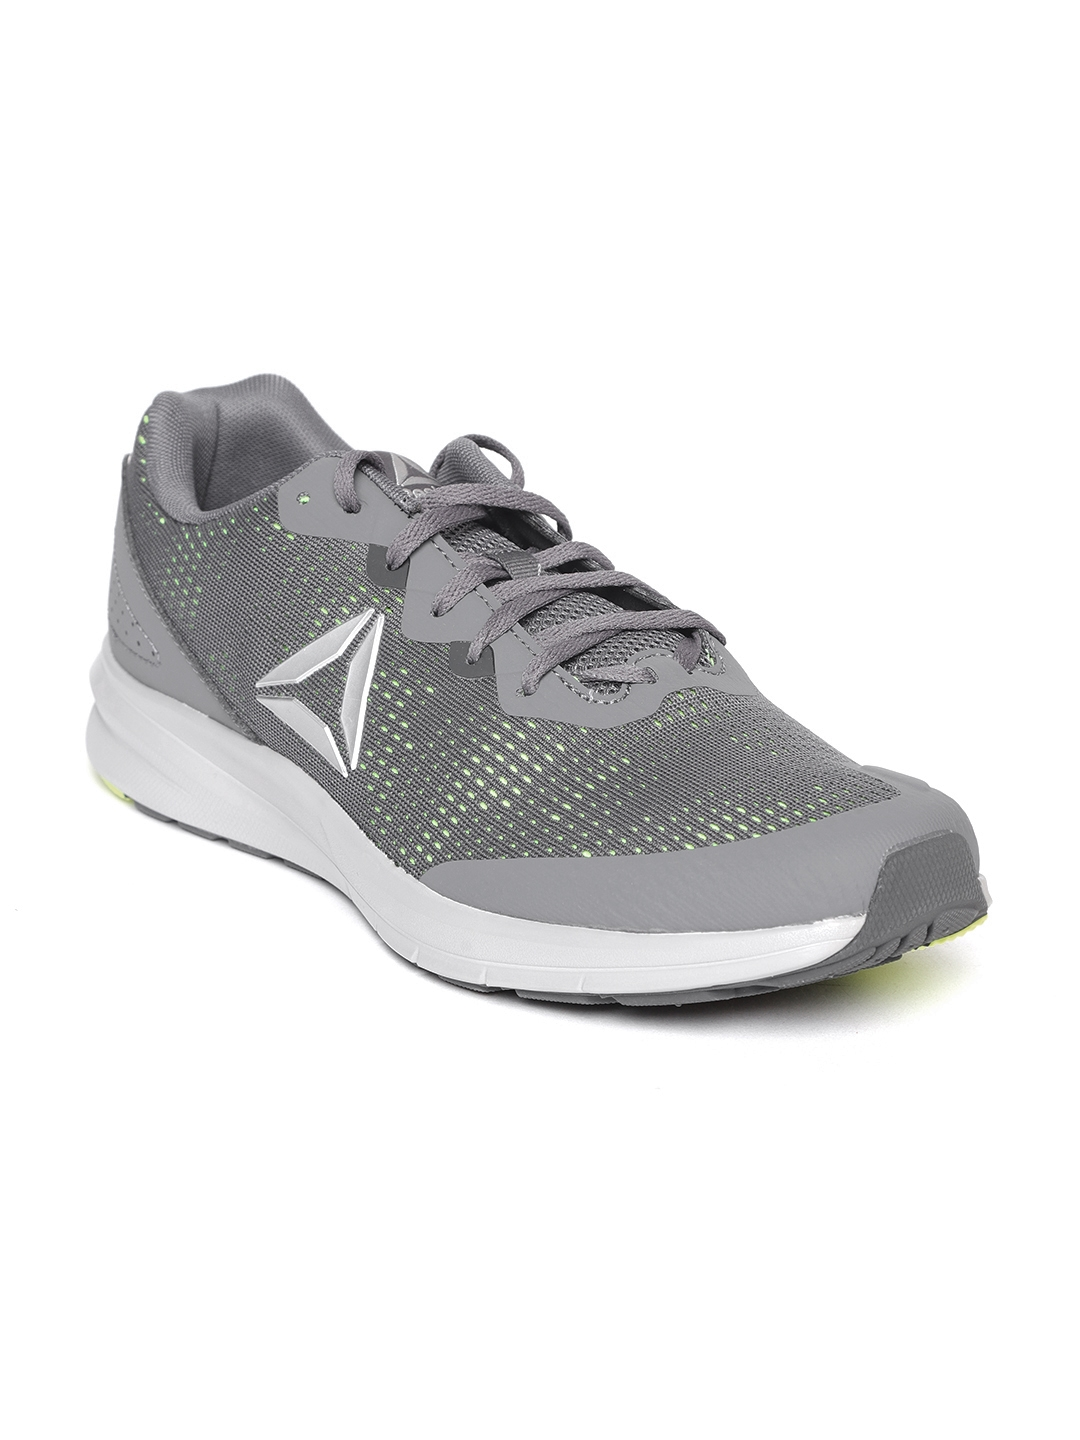 Buy Reebok Men Grey Runner 3.0 Running Shoes - Sports Shoes for Men ... dad0c4c37